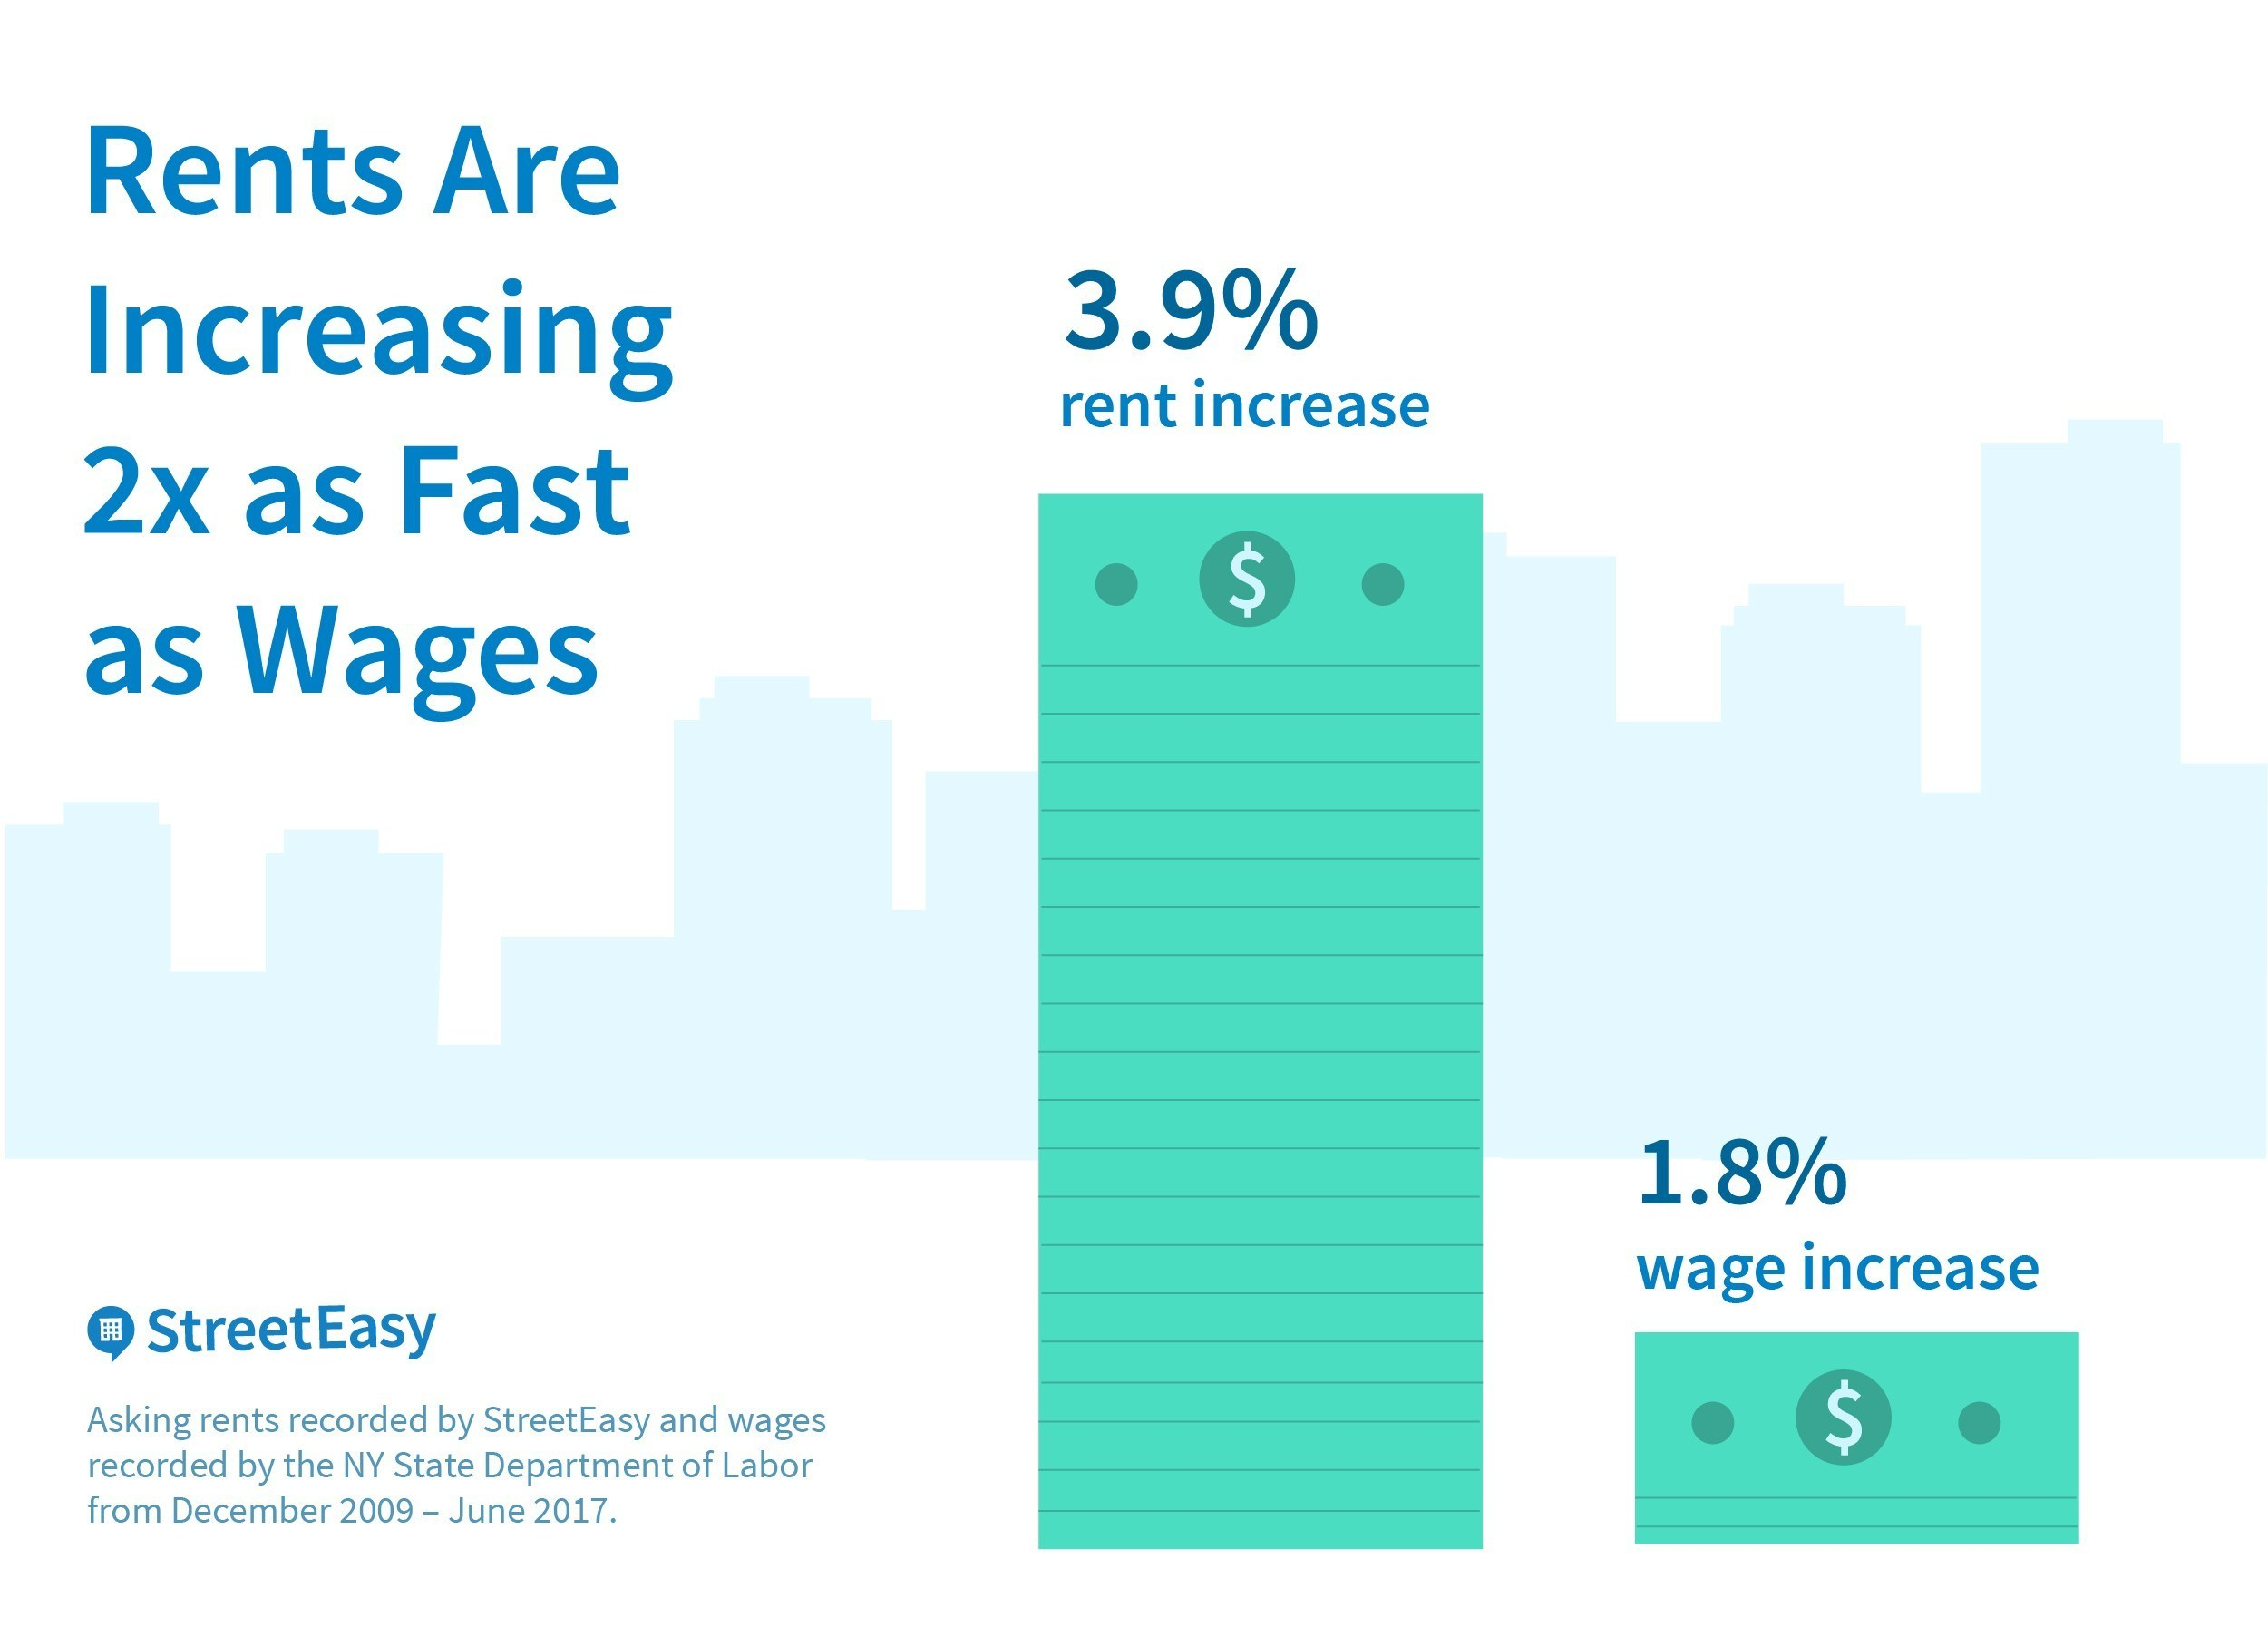 Rents Are Increasing 2x as Fast as Wages